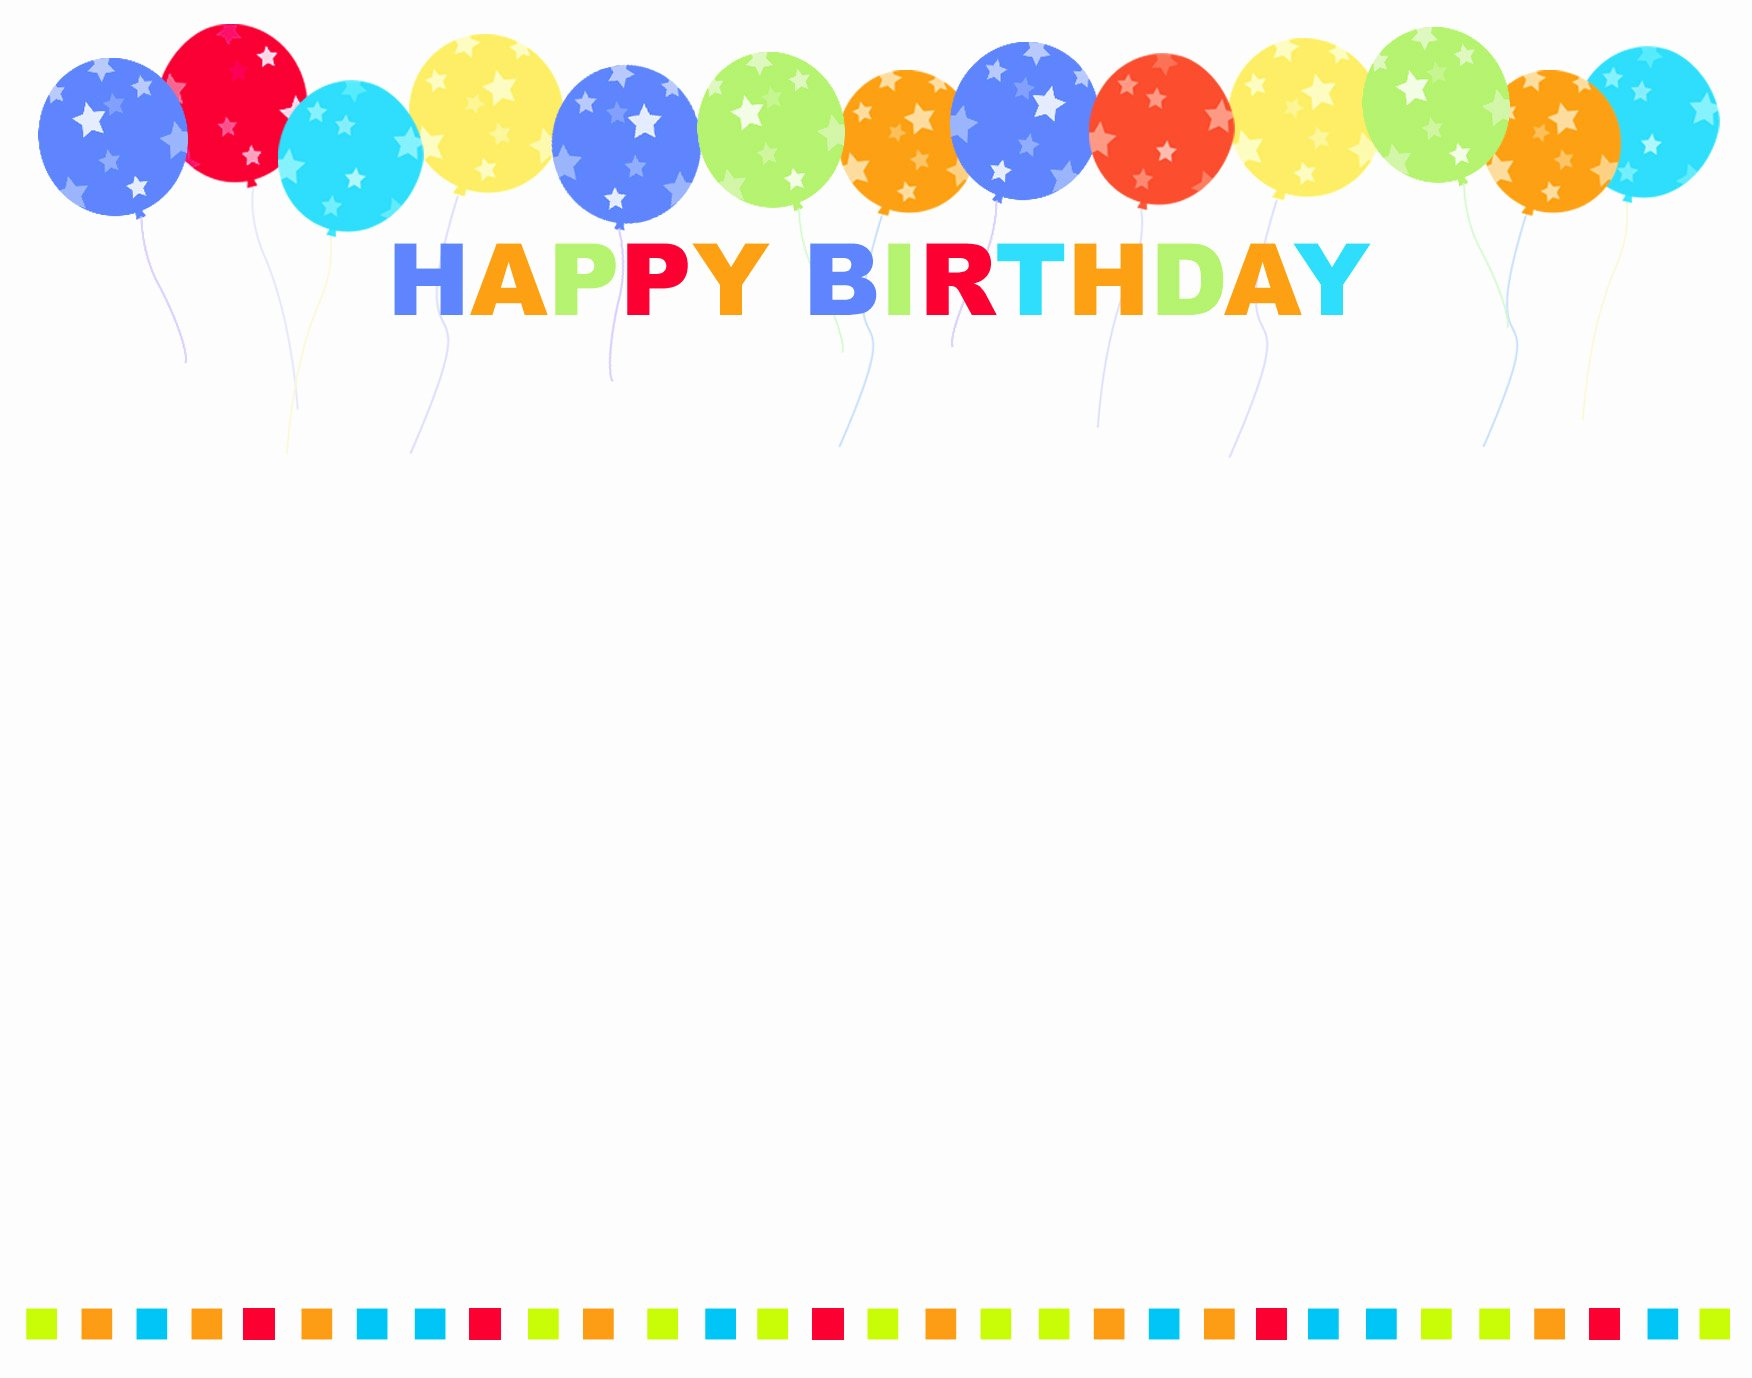 Happy Birthday Background Images Best Of Happy Birthday Frame Wallpapers High Quality